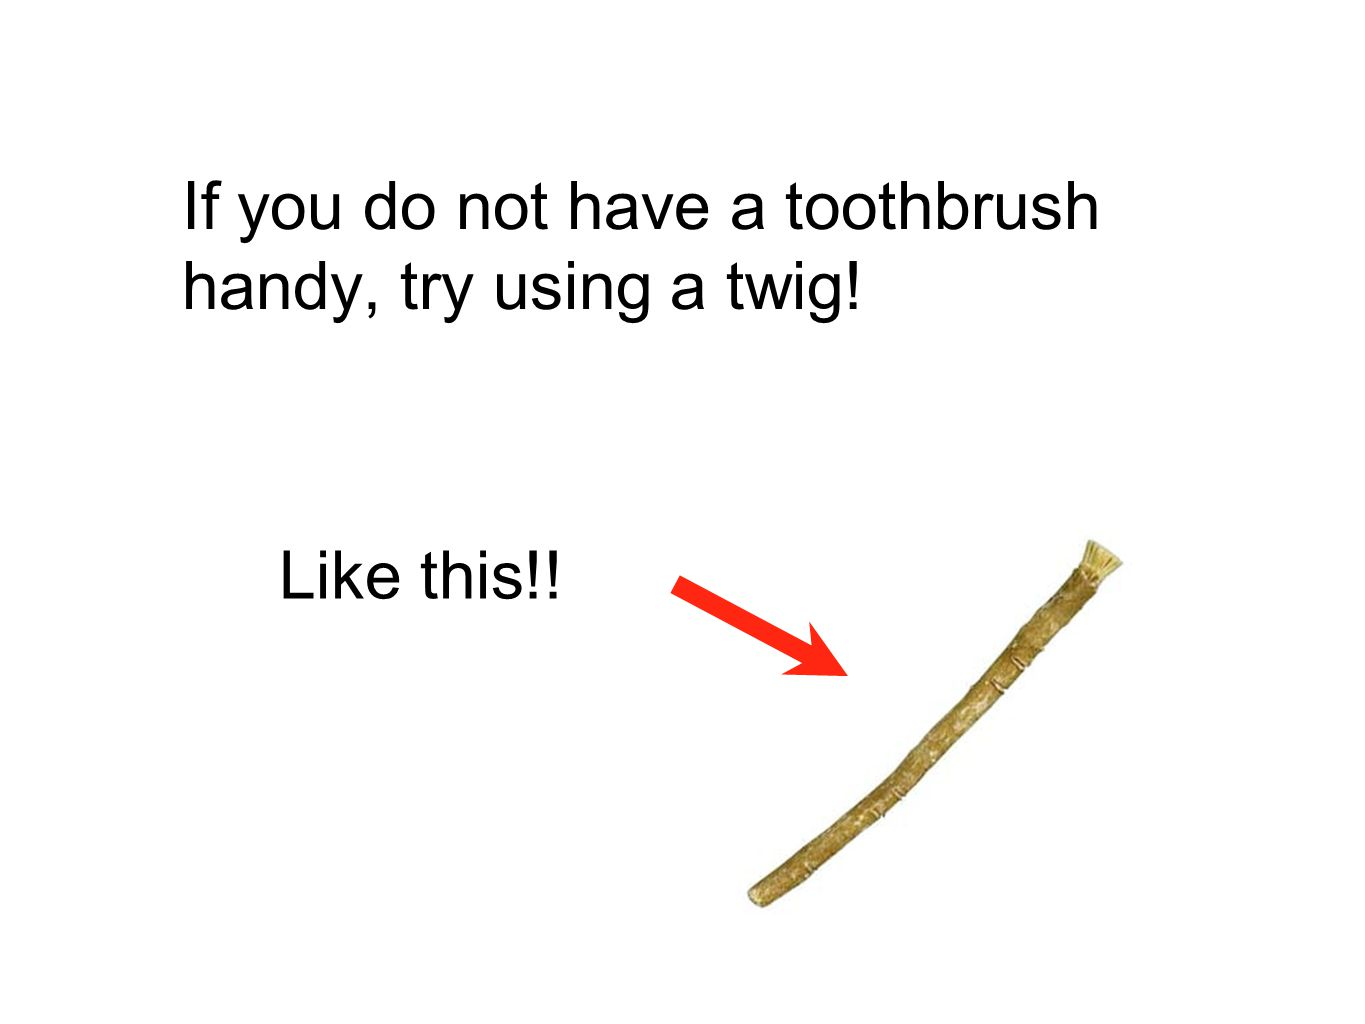 If you do not have a toothbrush handy, try using a twig!